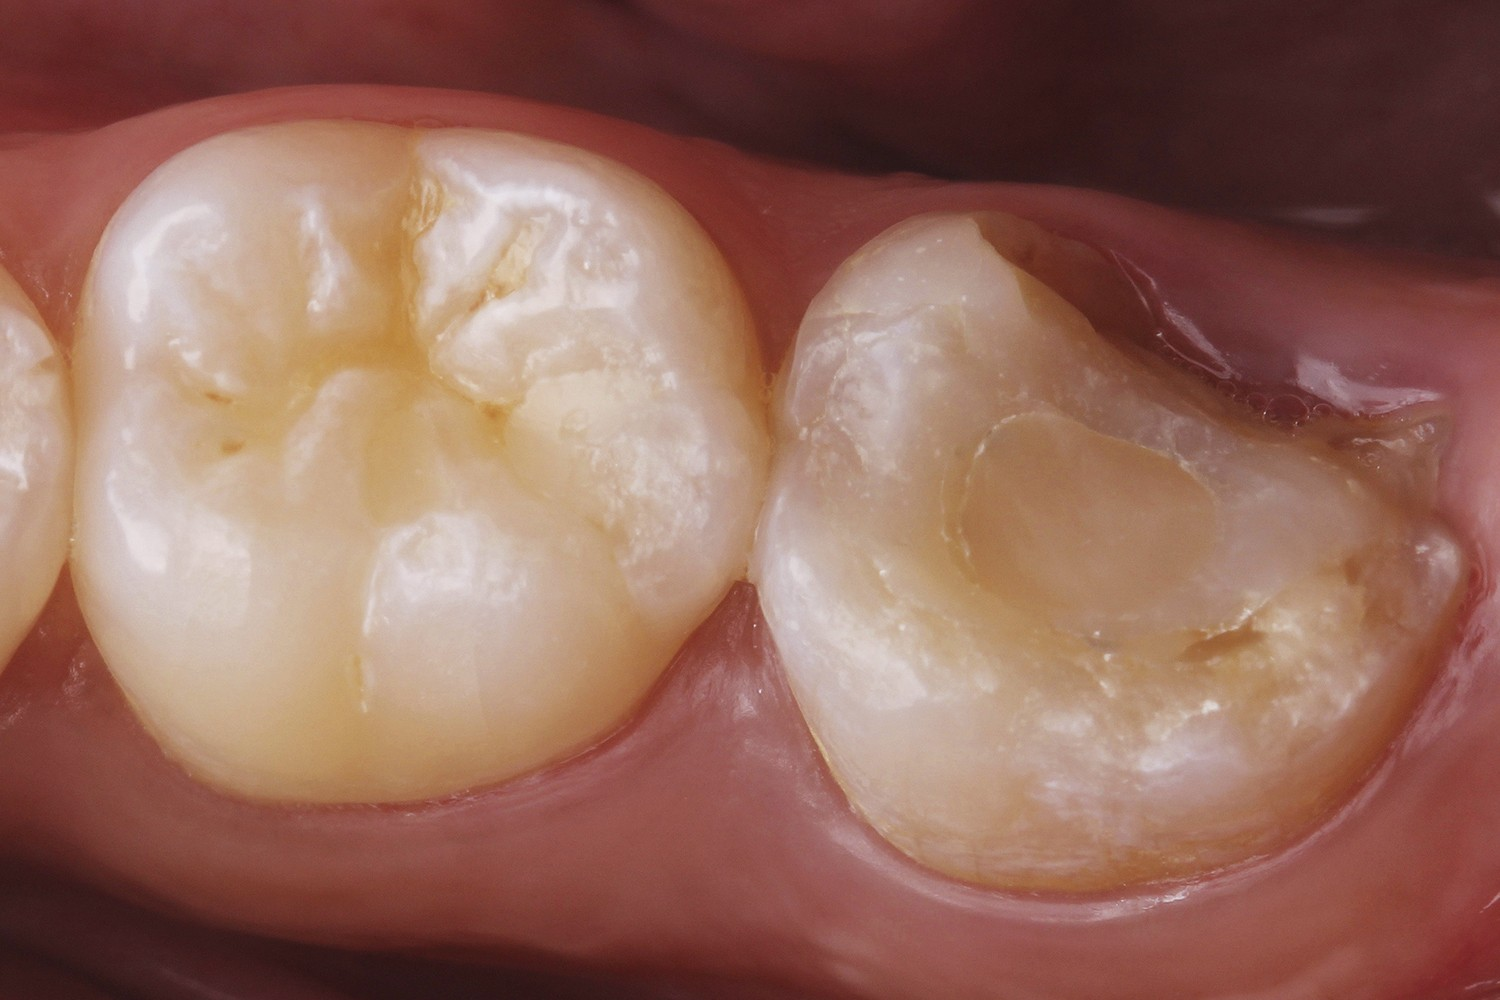 A conservative approach for a tooth fractured at the cusp: A long-term clinical report